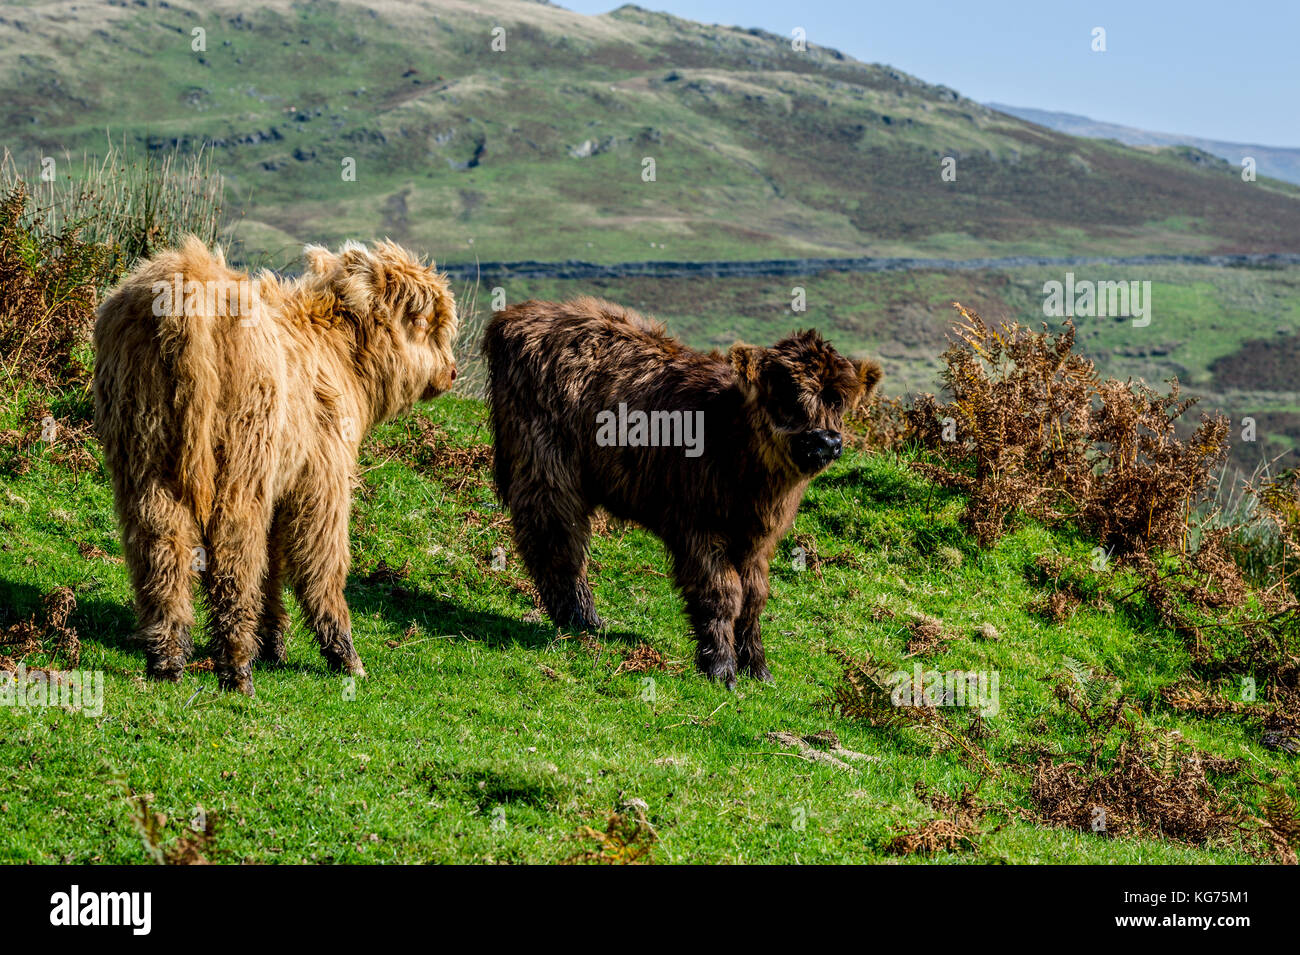 Highland Cattle standing in a field near Coniston in the Lake District, Cumbria - Stock Image